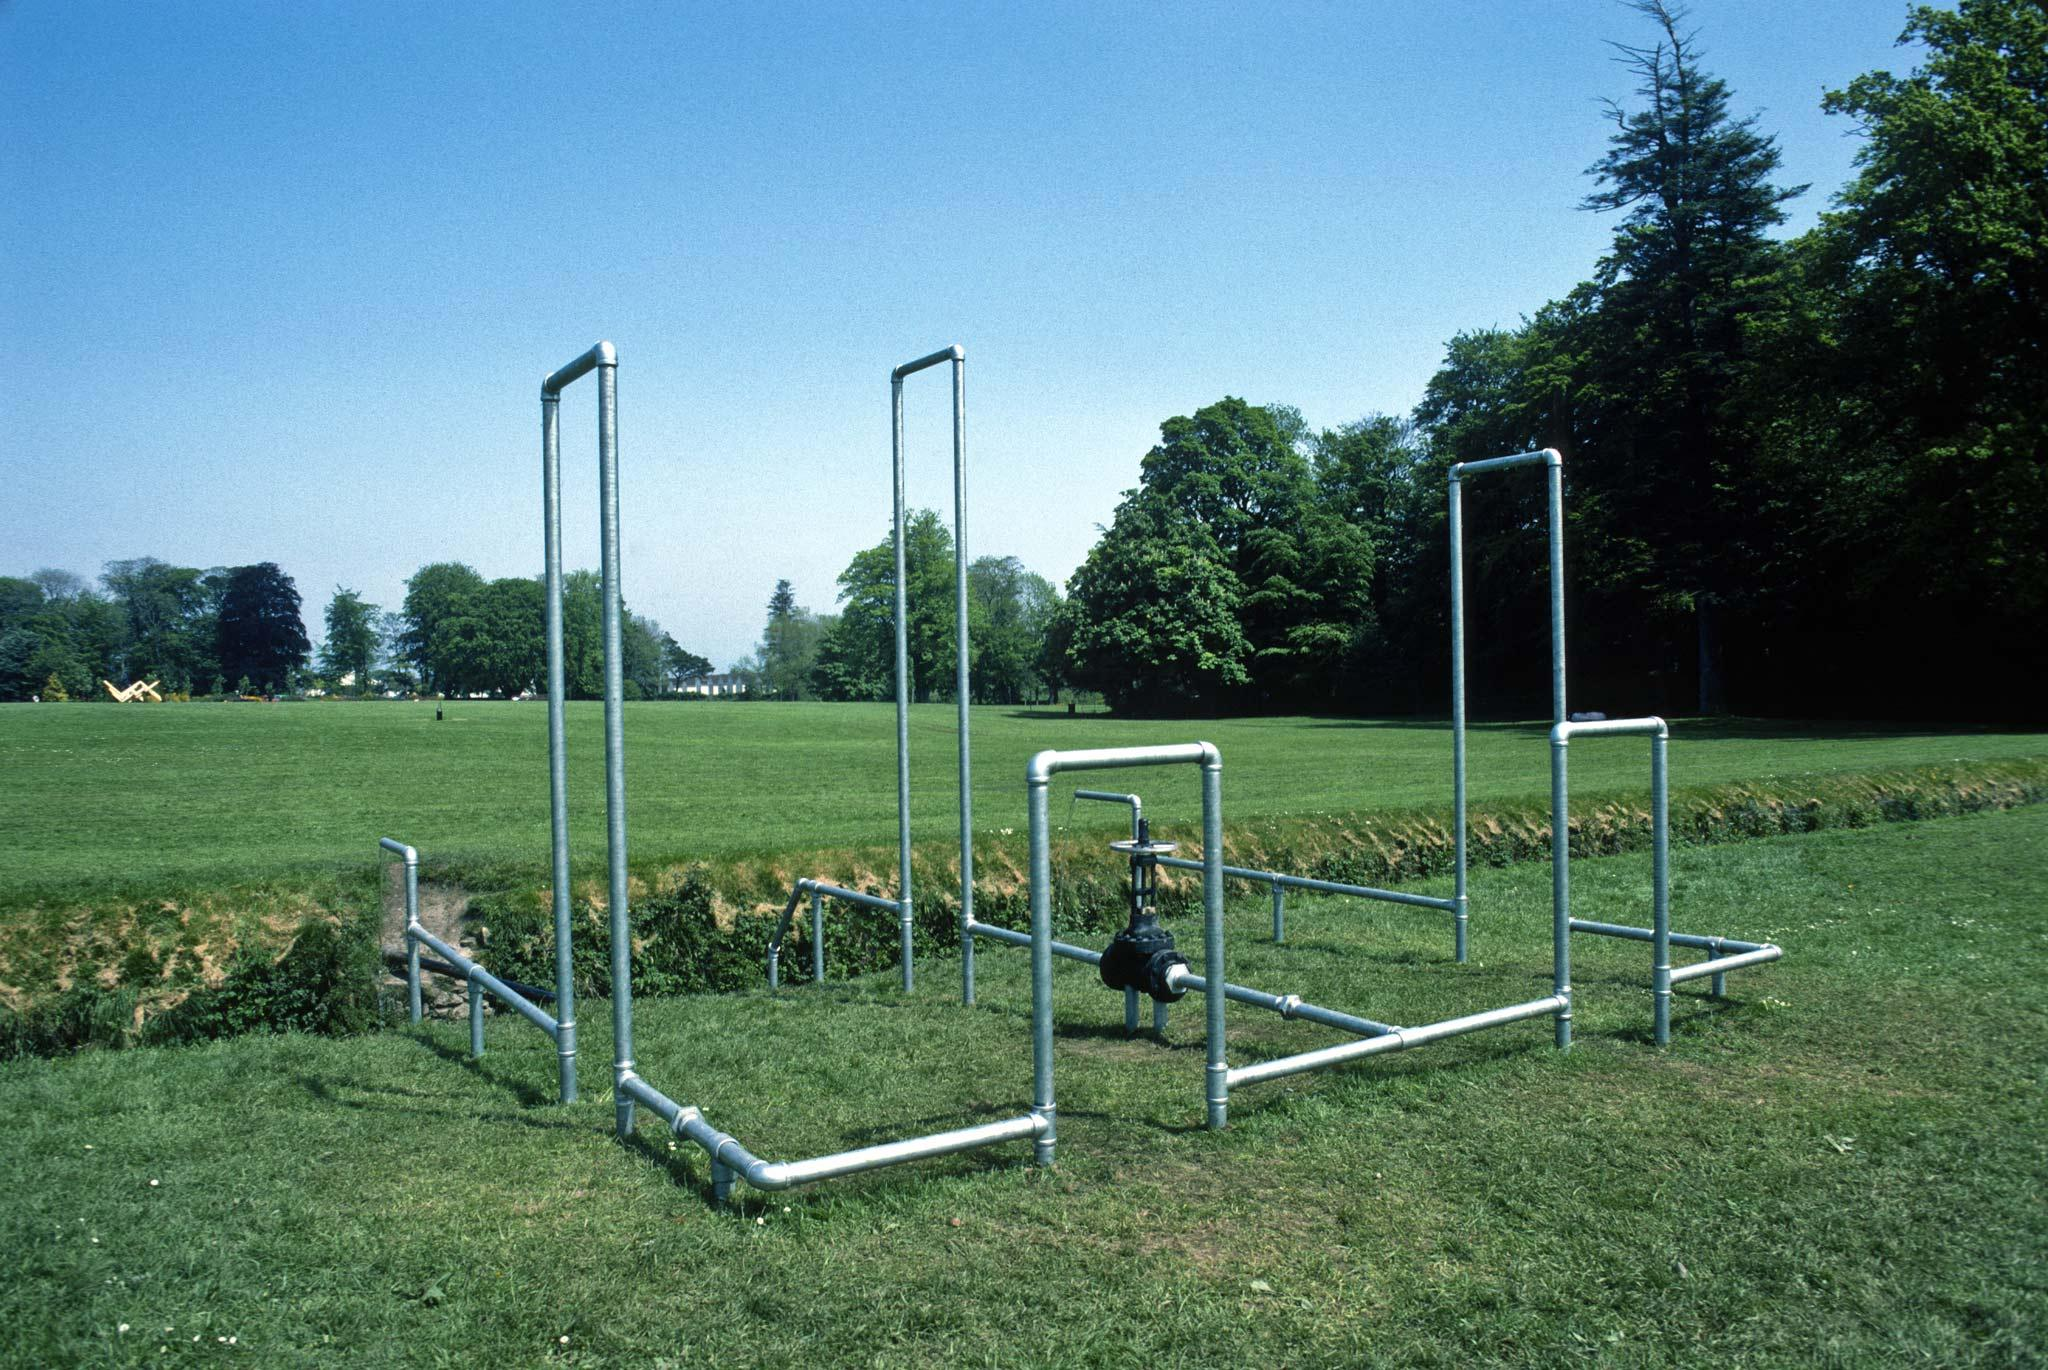 galvanzied pipes organized into rectilinear structures in a field outside a large home in Ireland